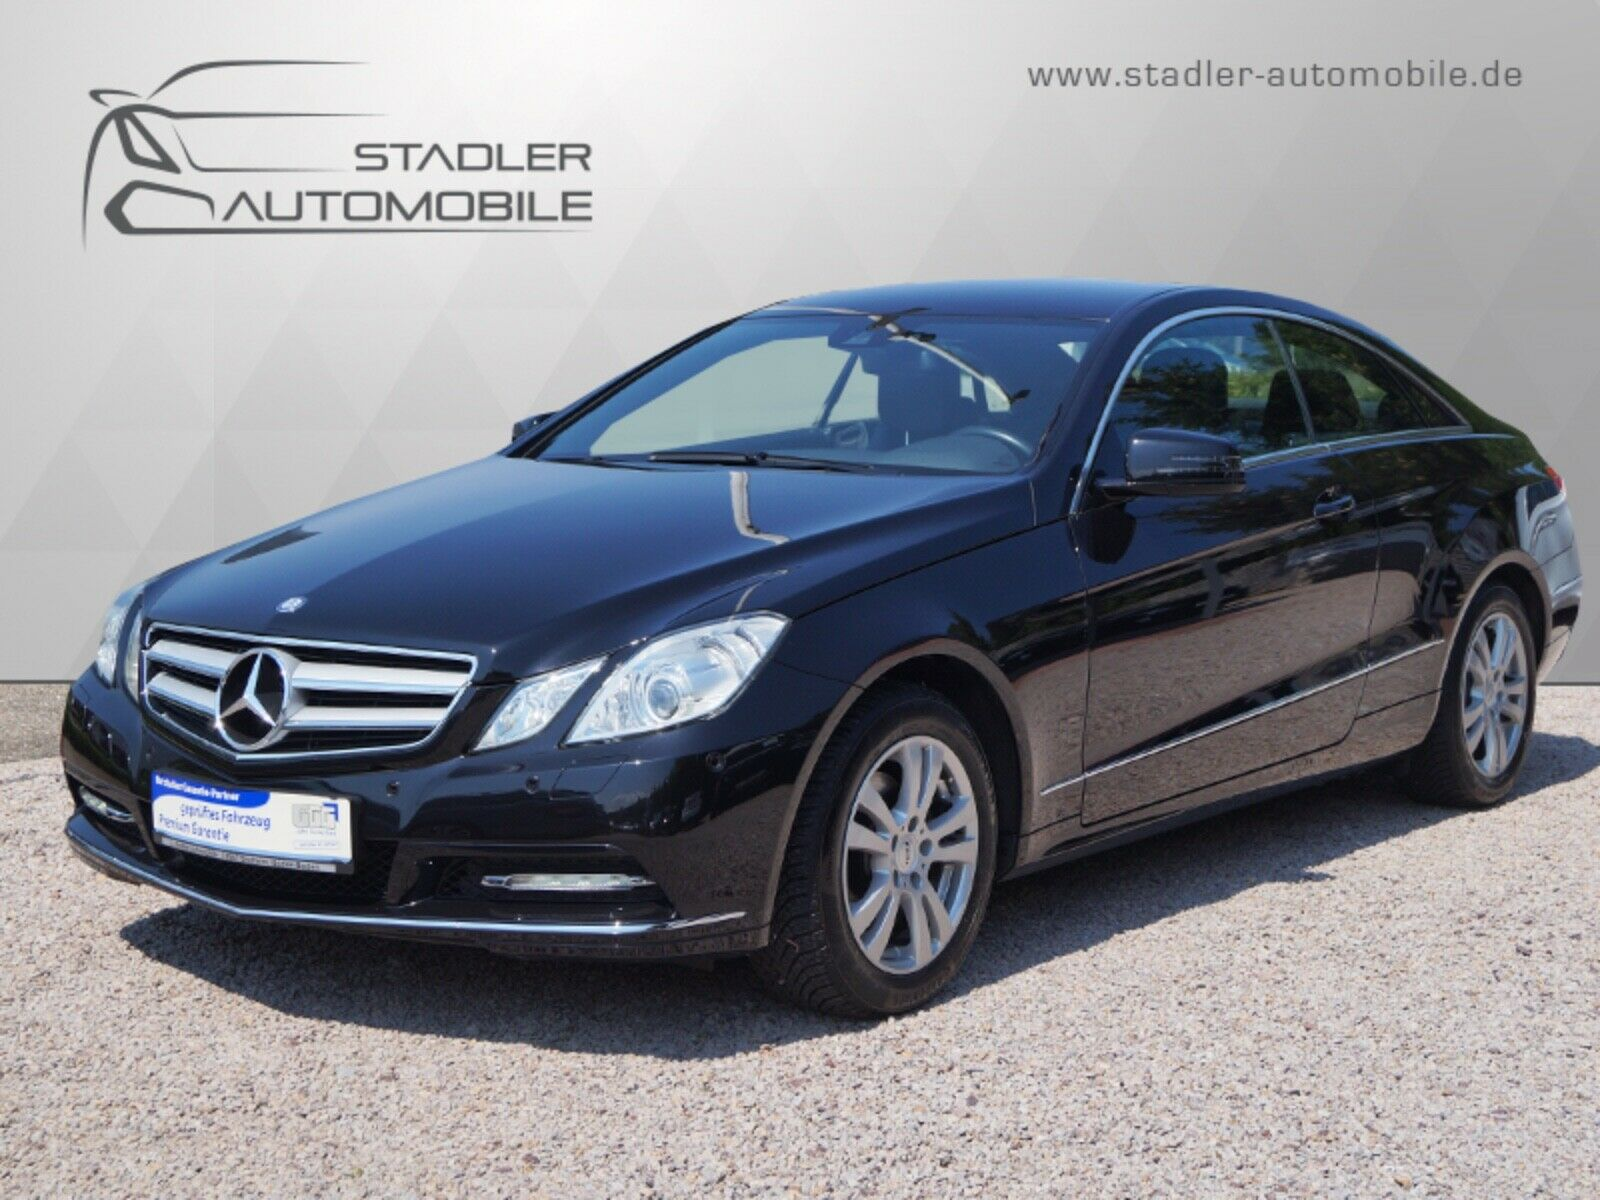 MERCEDES-BENZ Coupe E 200 CGI BlueEfficiency*NAVI*7G-TRONIC*SH